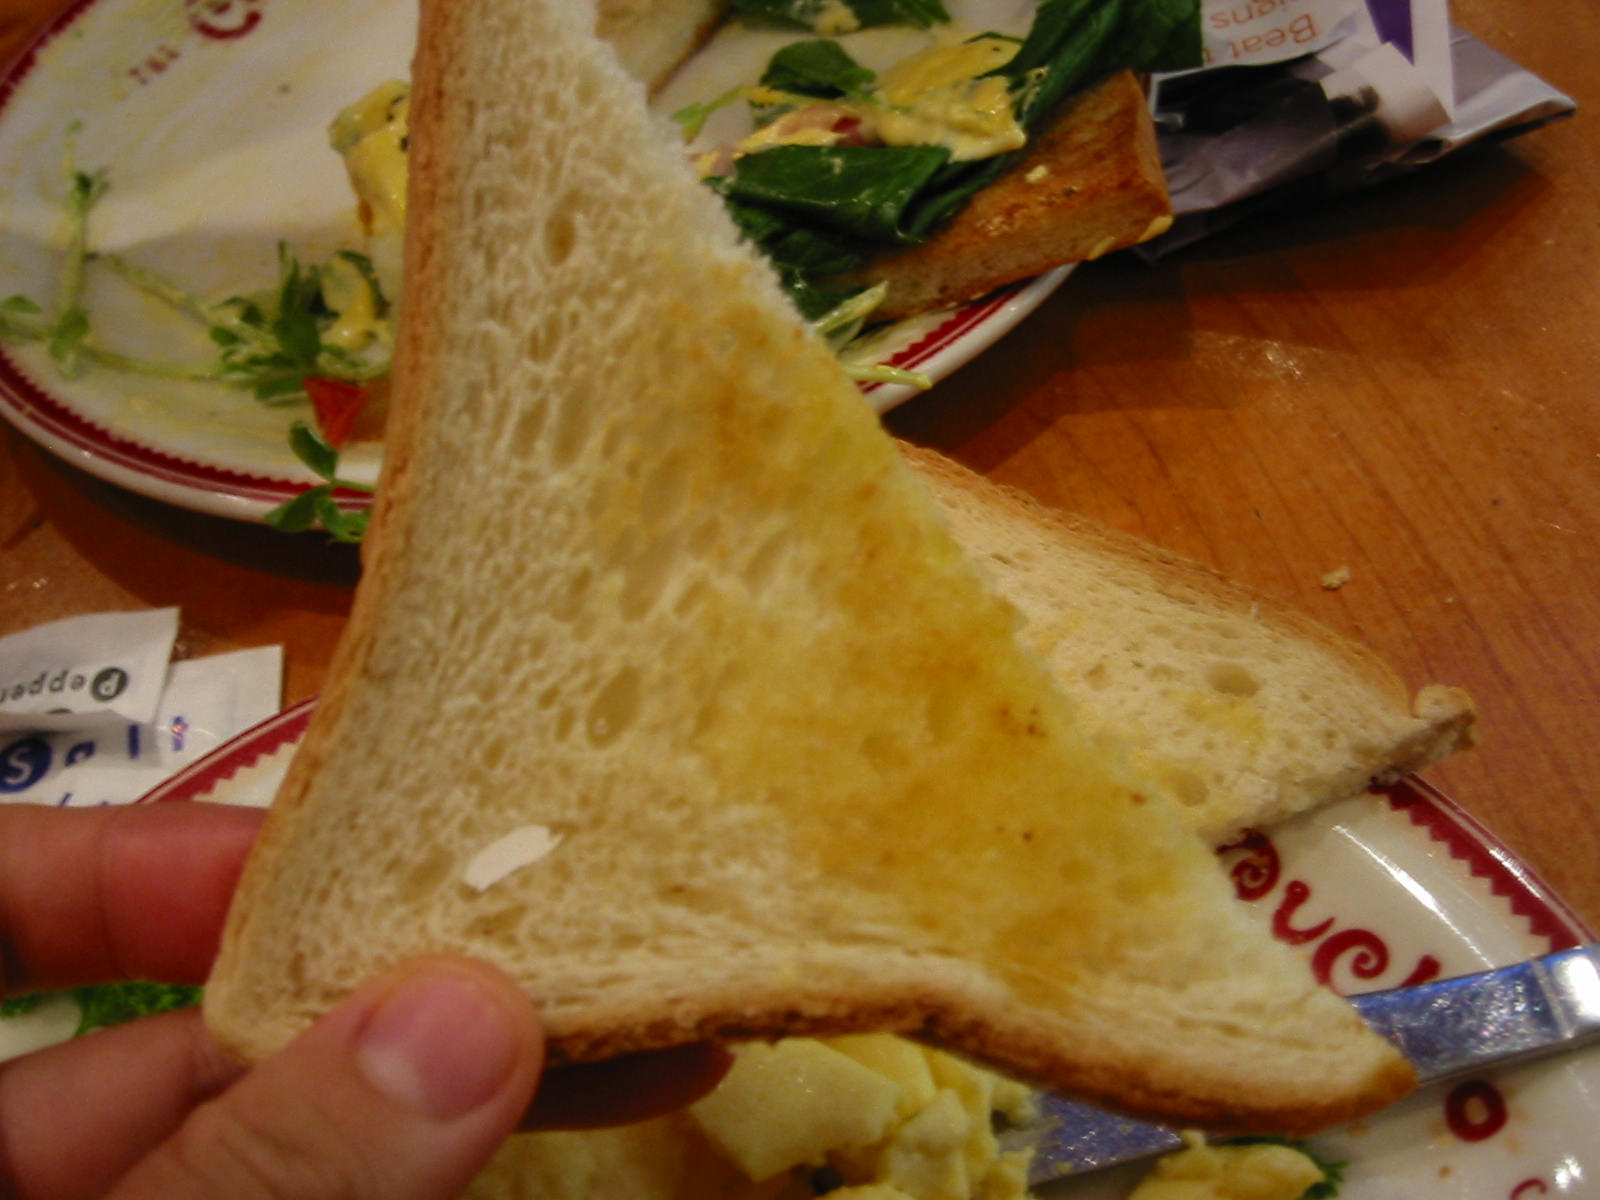 Barely buttered toast